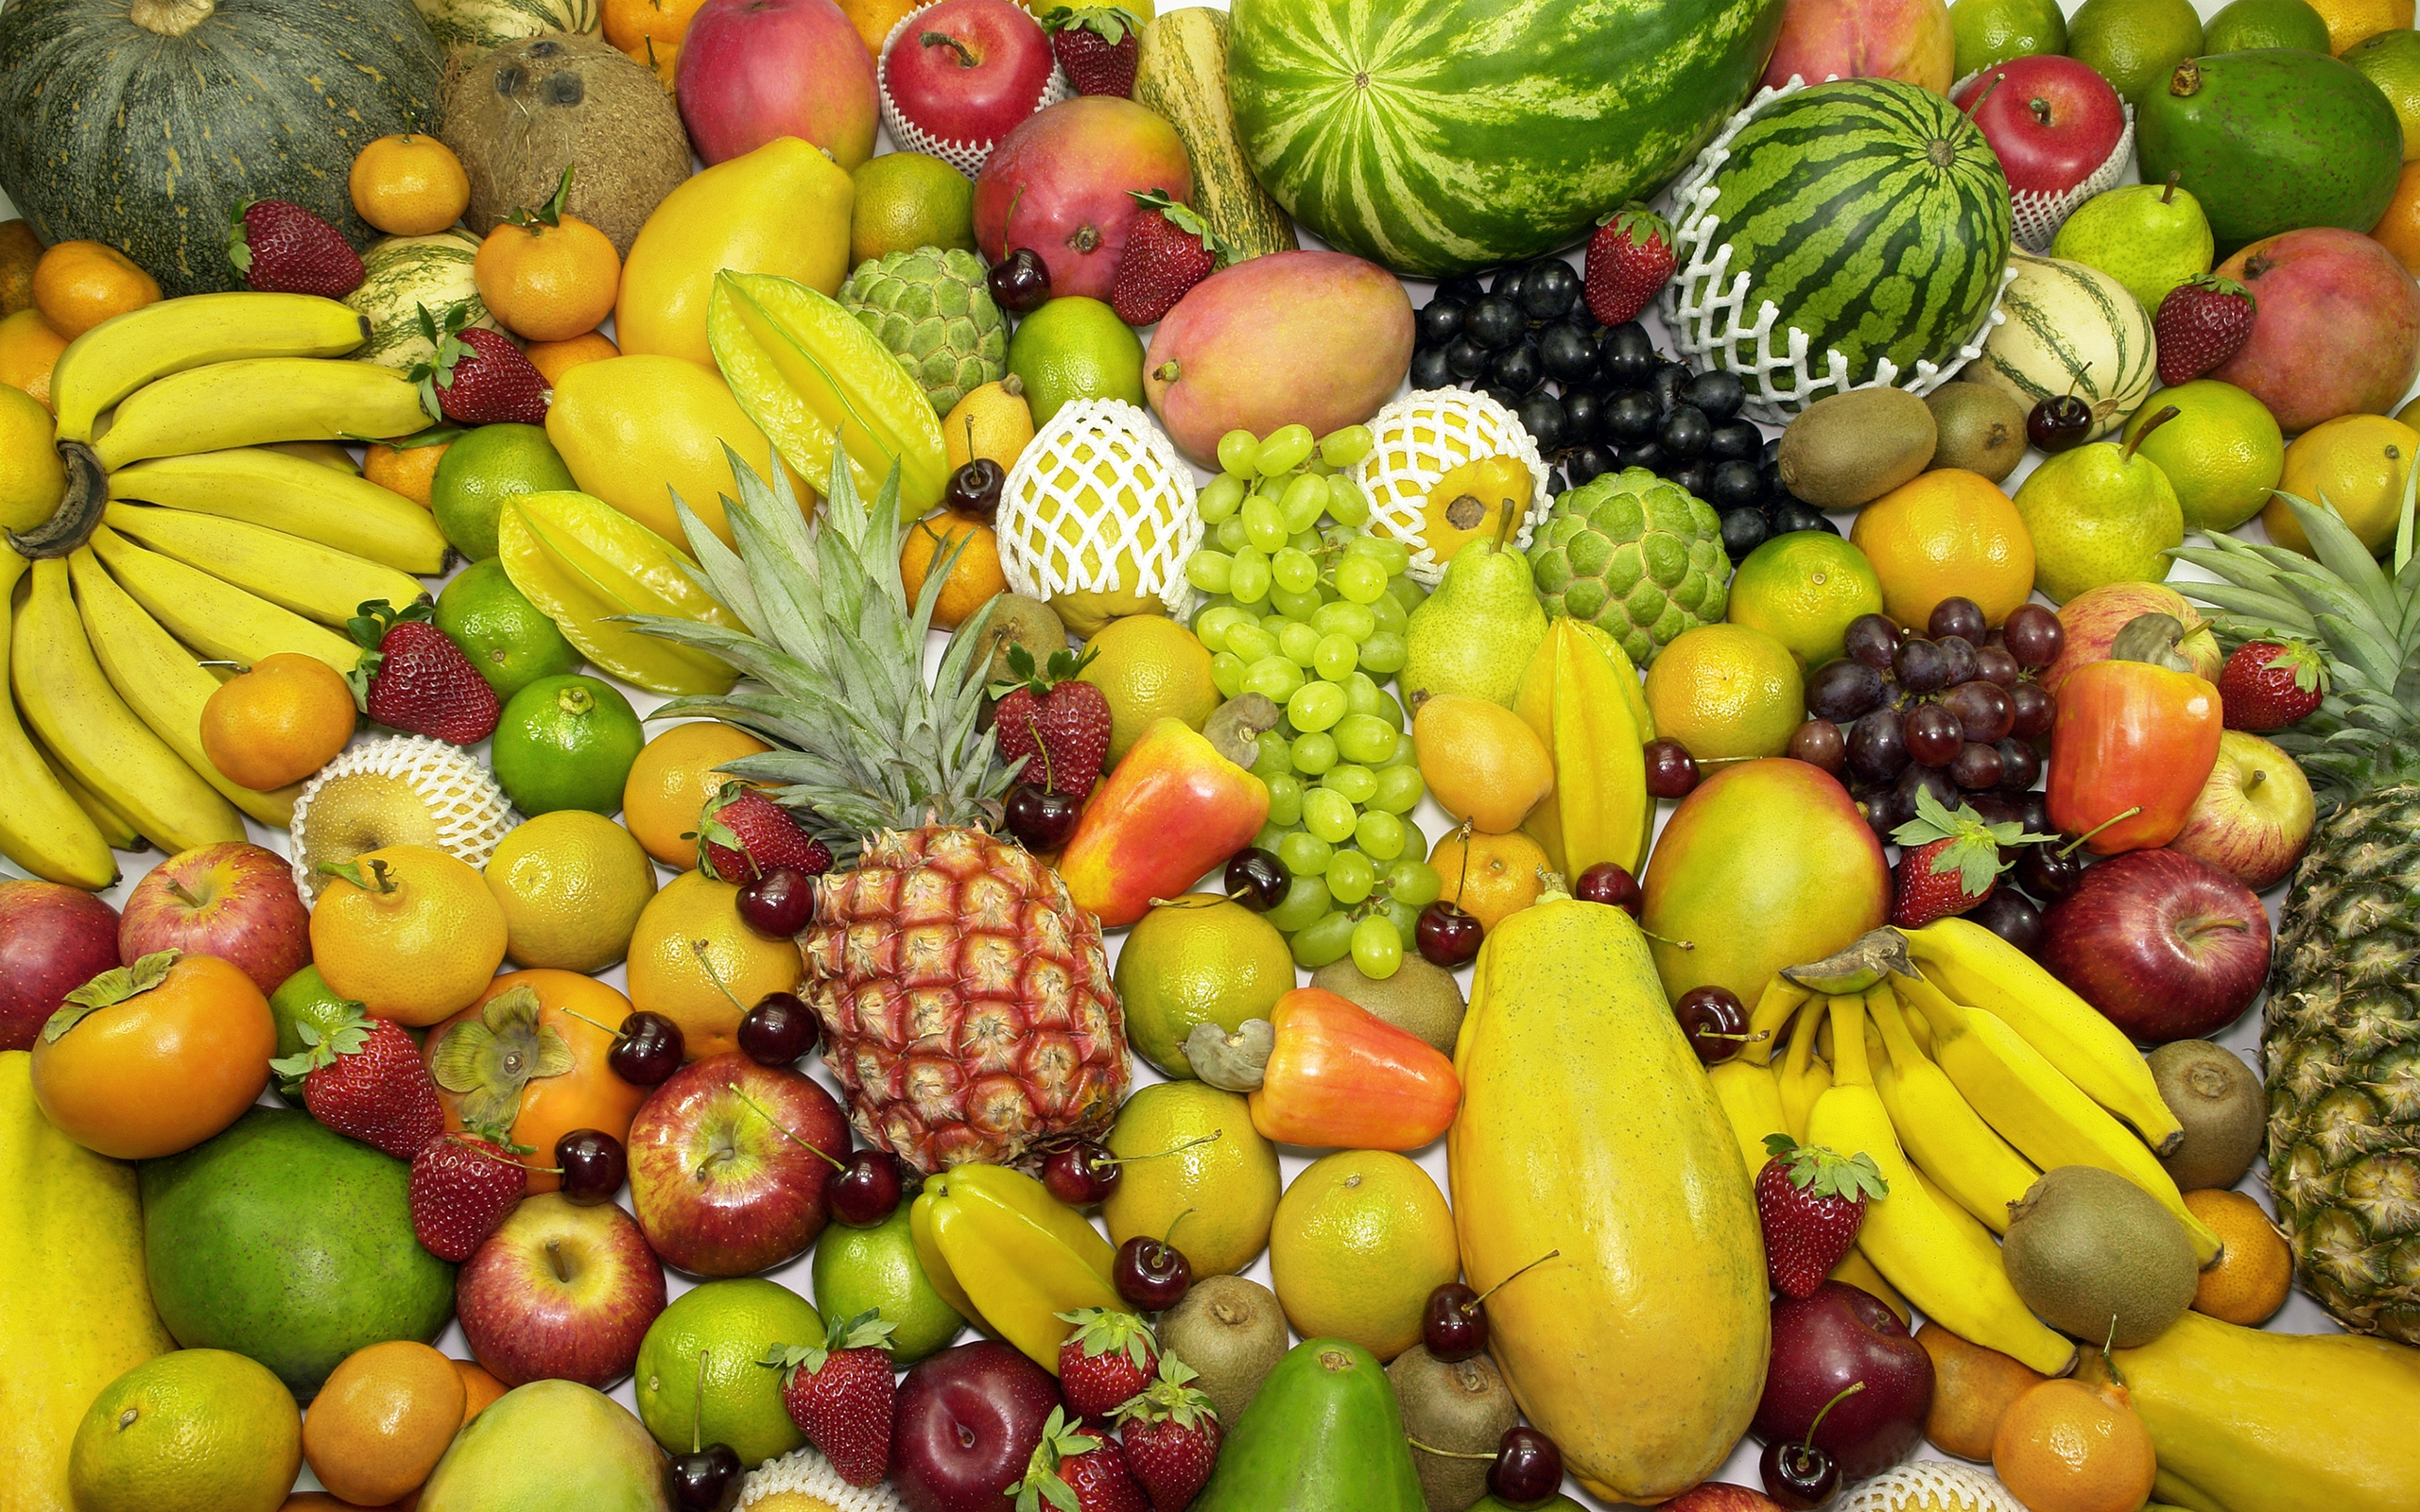 Traders move to fight calcium carbide usage on fruits